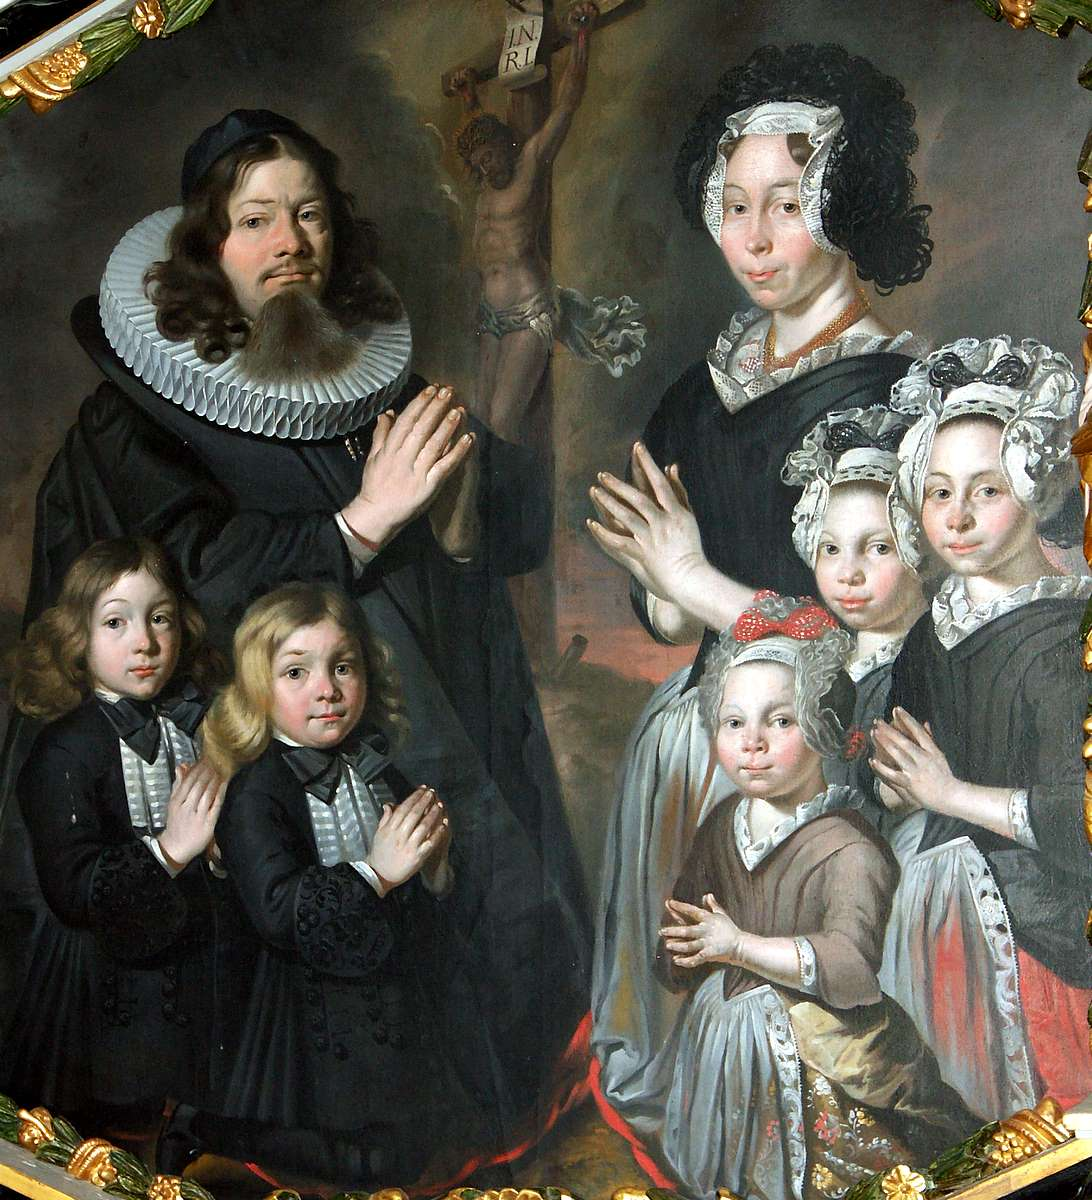 Картинки по запросу Laurits Jensen Beder and Anna Cathrine Pedersdatter Dorscheus with their children Beder kirke, Denmark